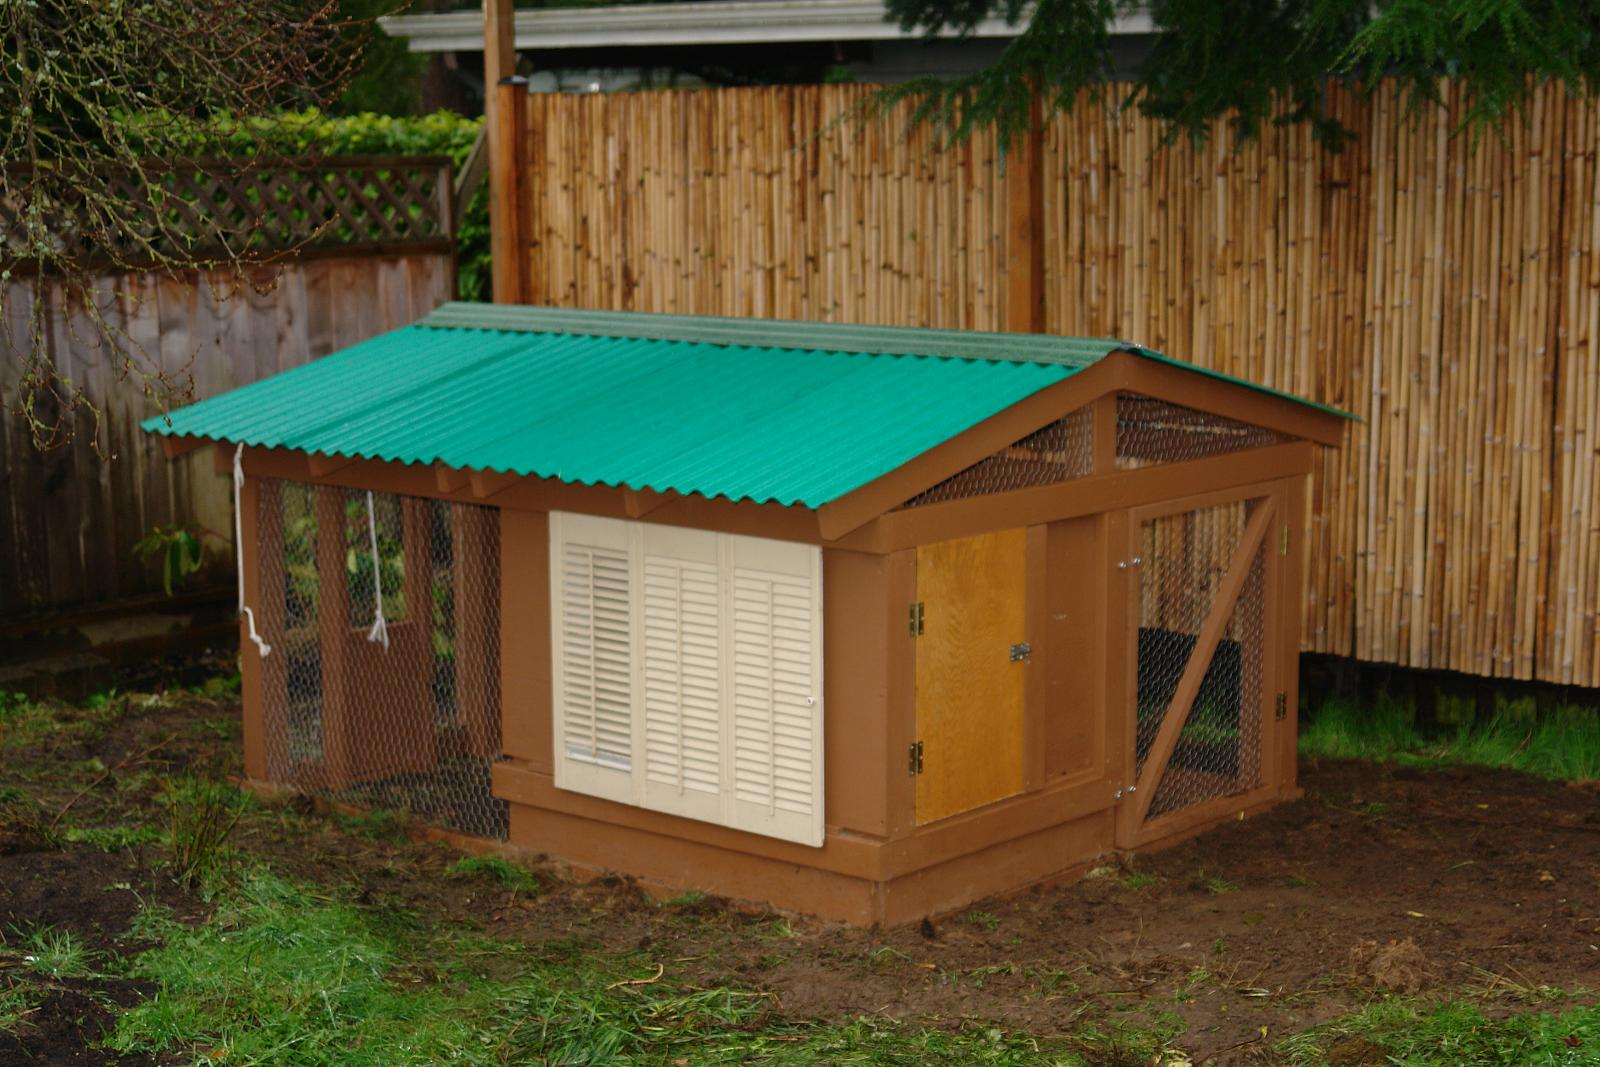 Backyard Chicken Coup file:backyard chicken coop - wikimedia commons